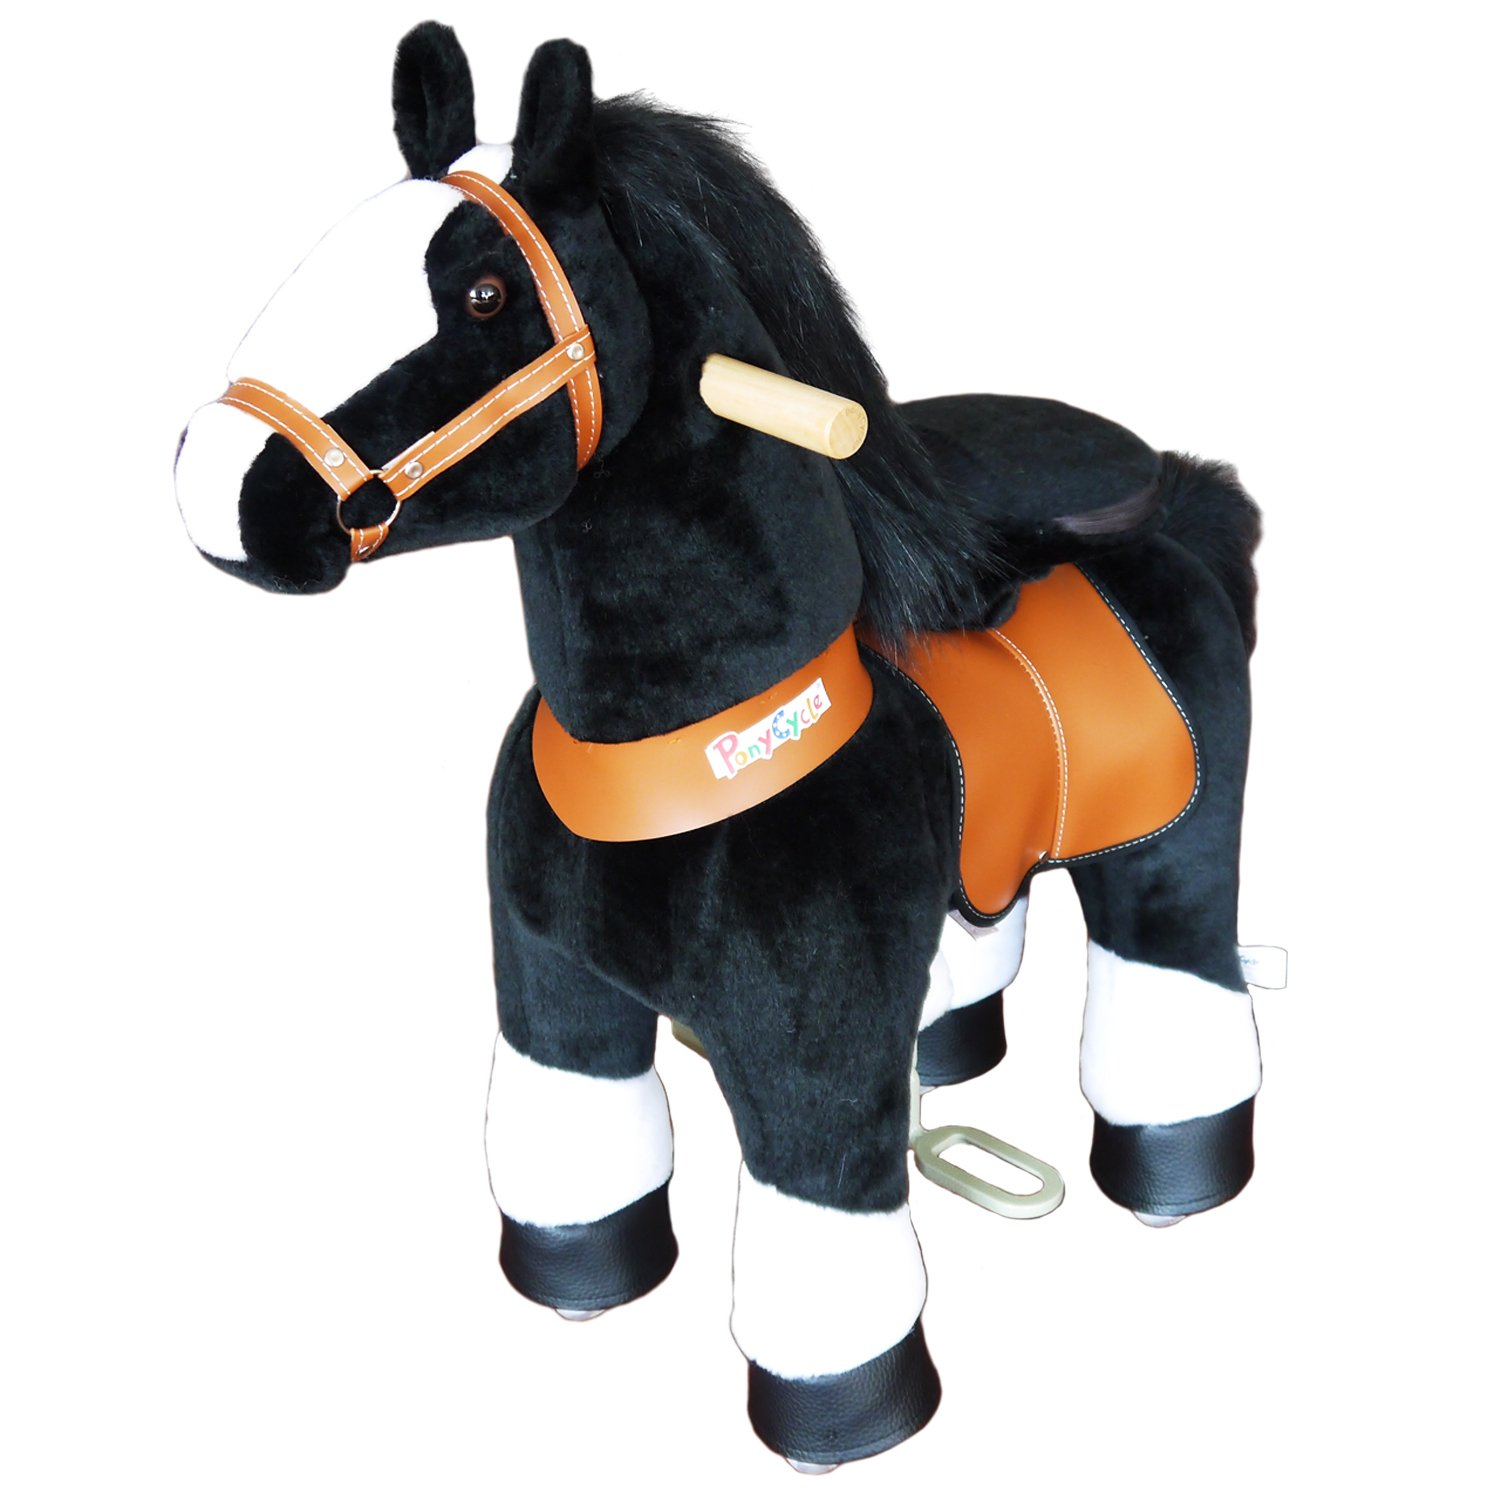 PonyCycle Official PonyCycle Ride On Black Horse With White Hoof No Battery No Electricity Mechanical Horse White & Black Medium for Age 4-9